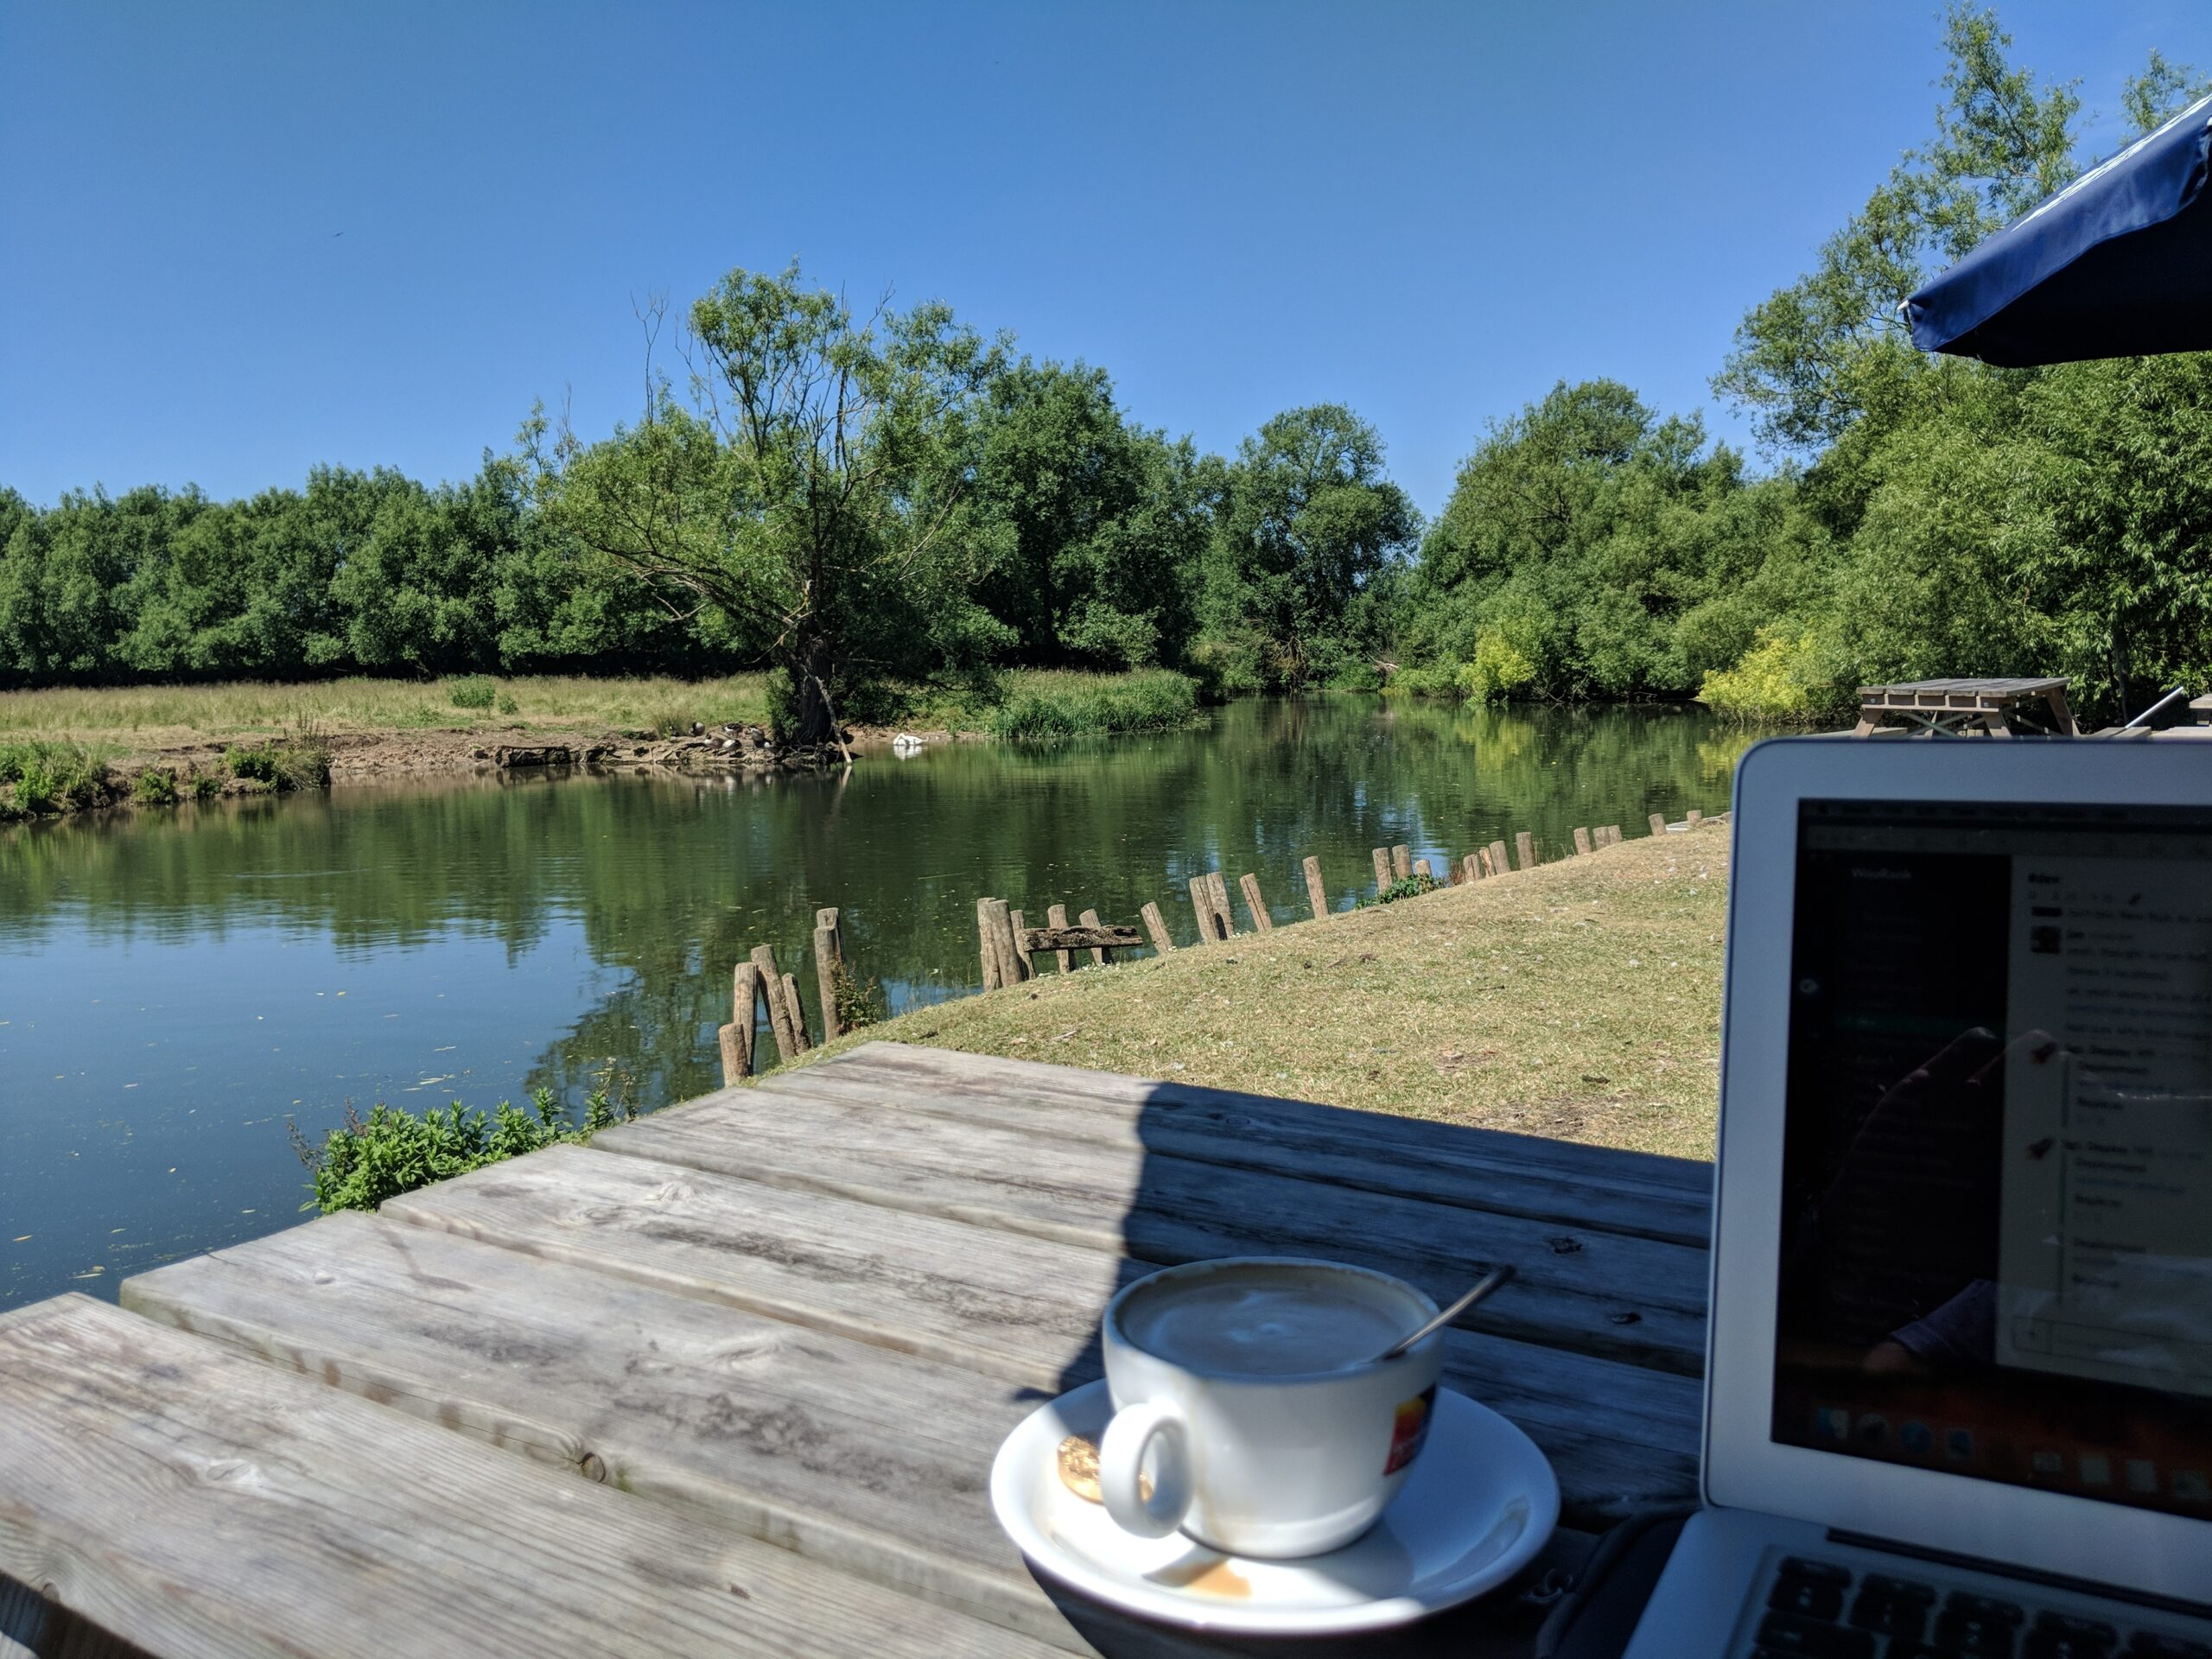 Working by the river